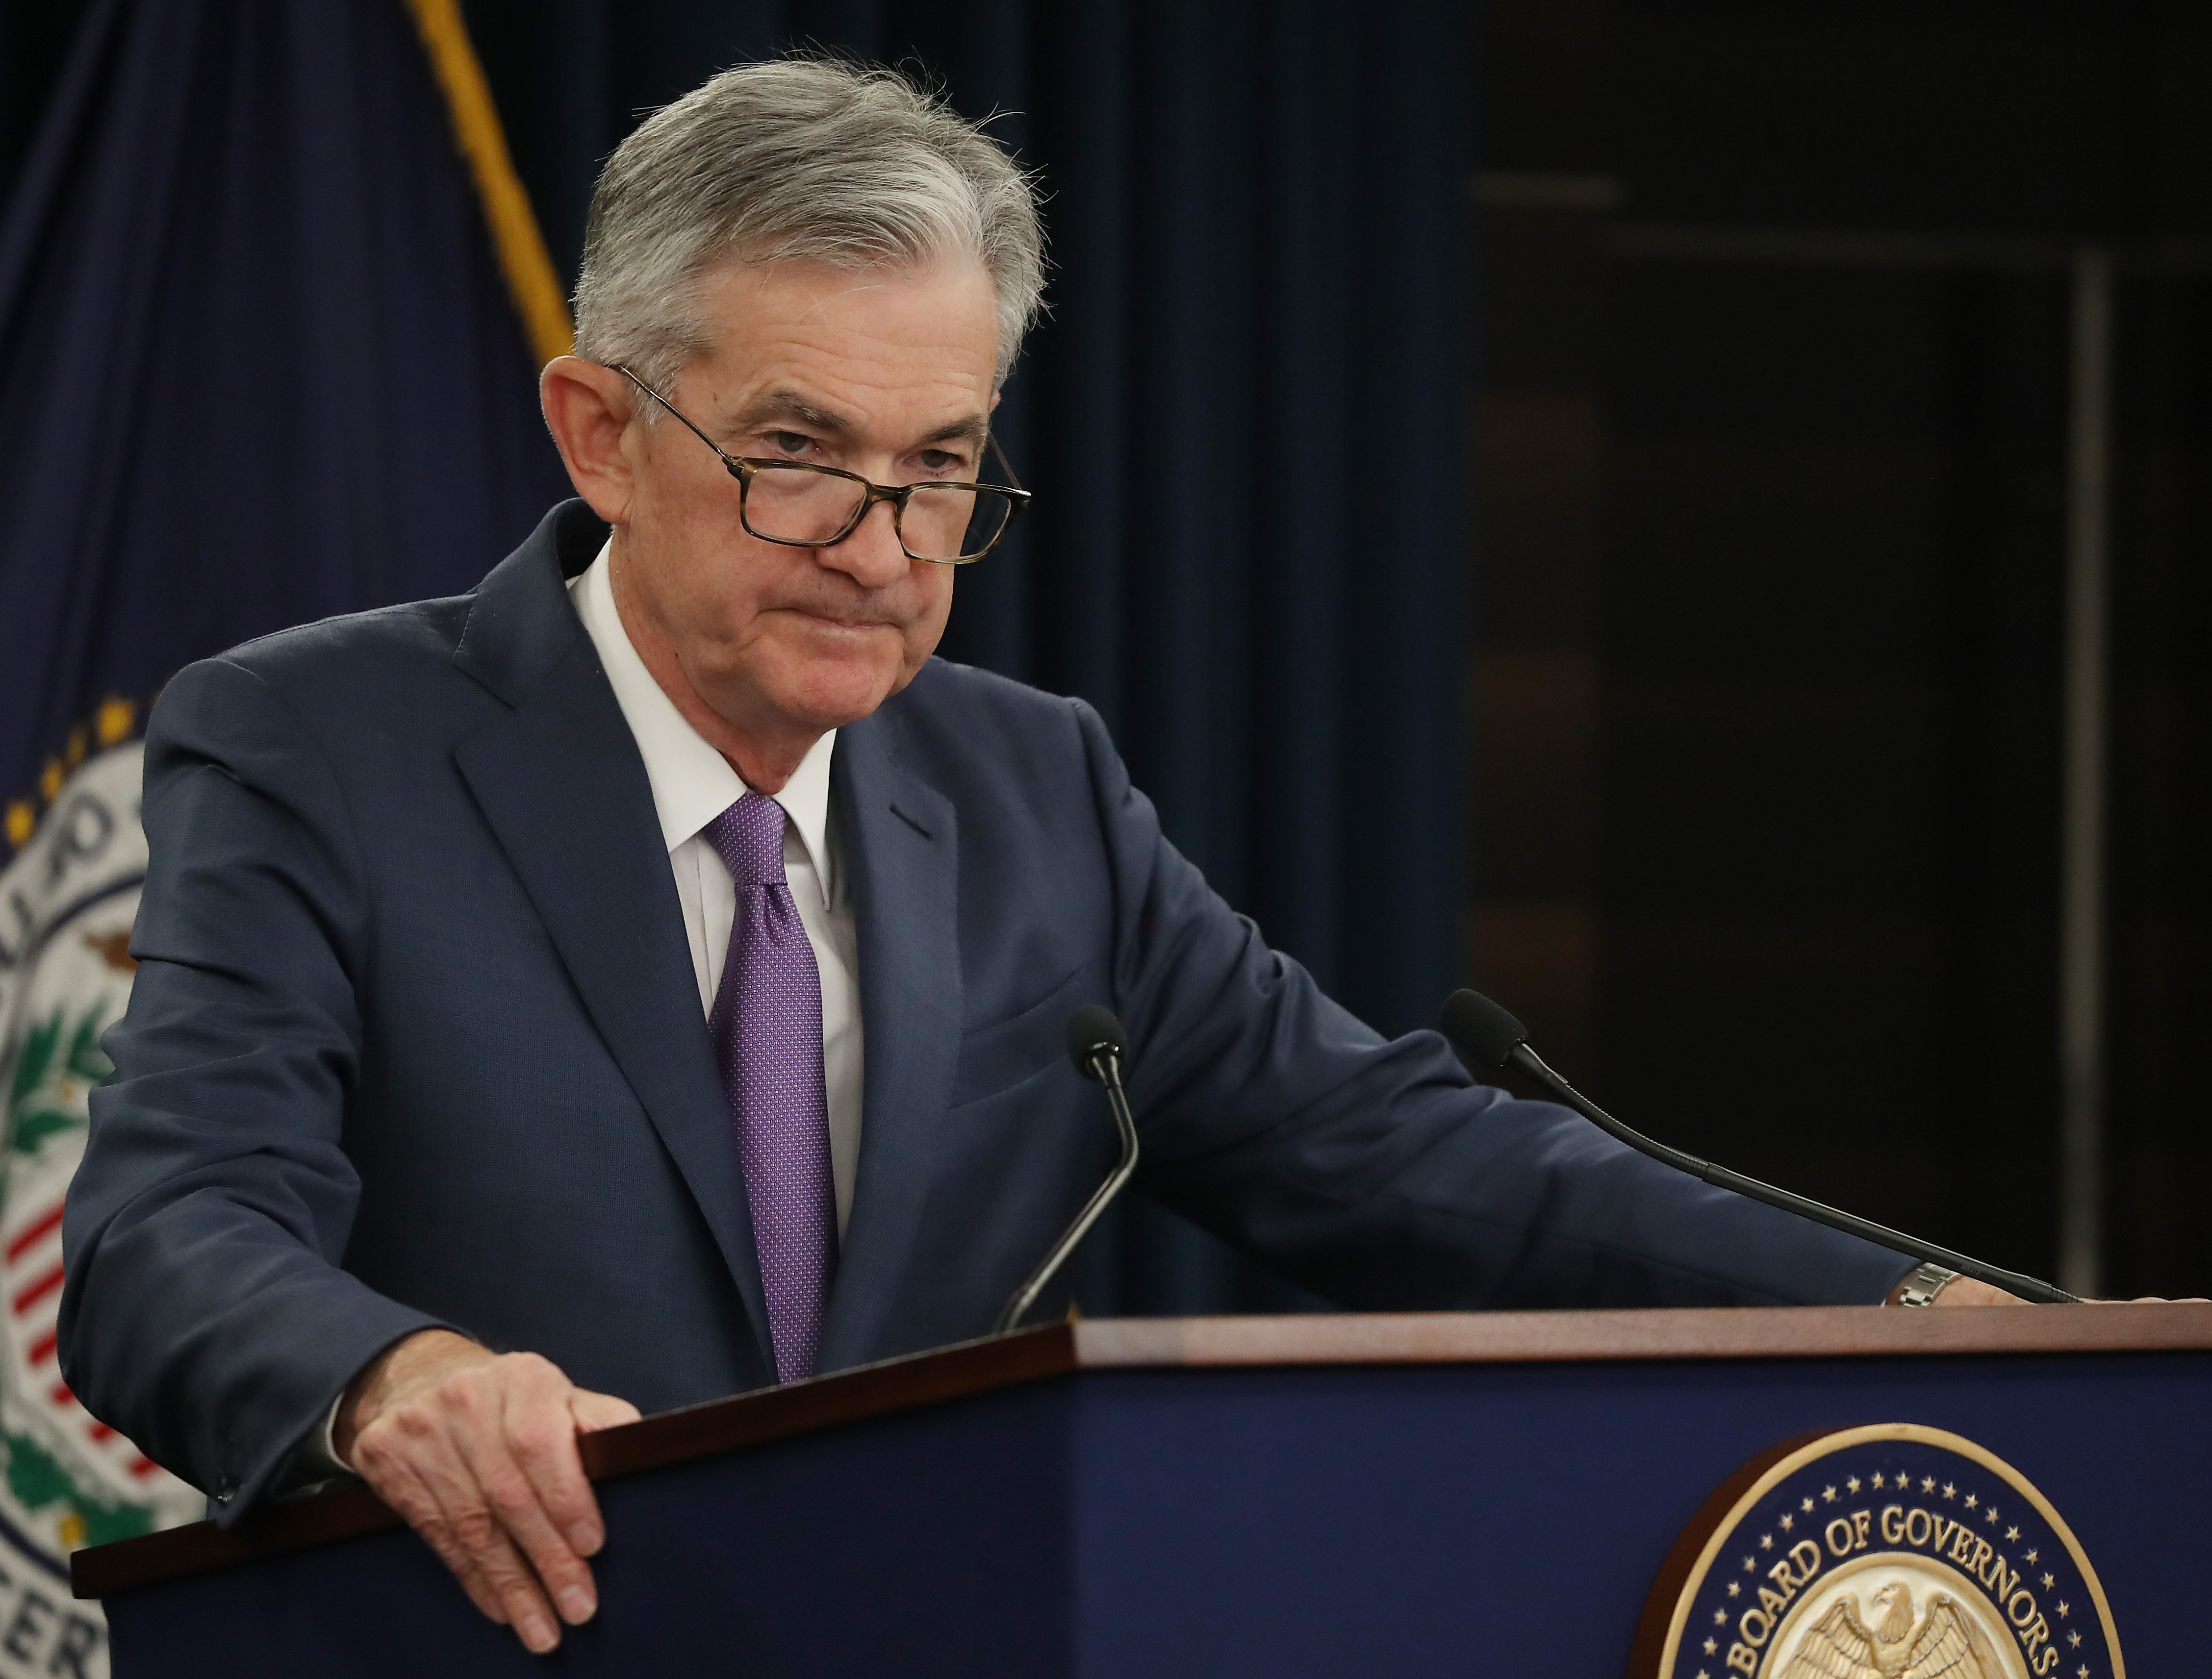 Fed chair Powell has kept markets calm, but now he has to reassure American shoppers